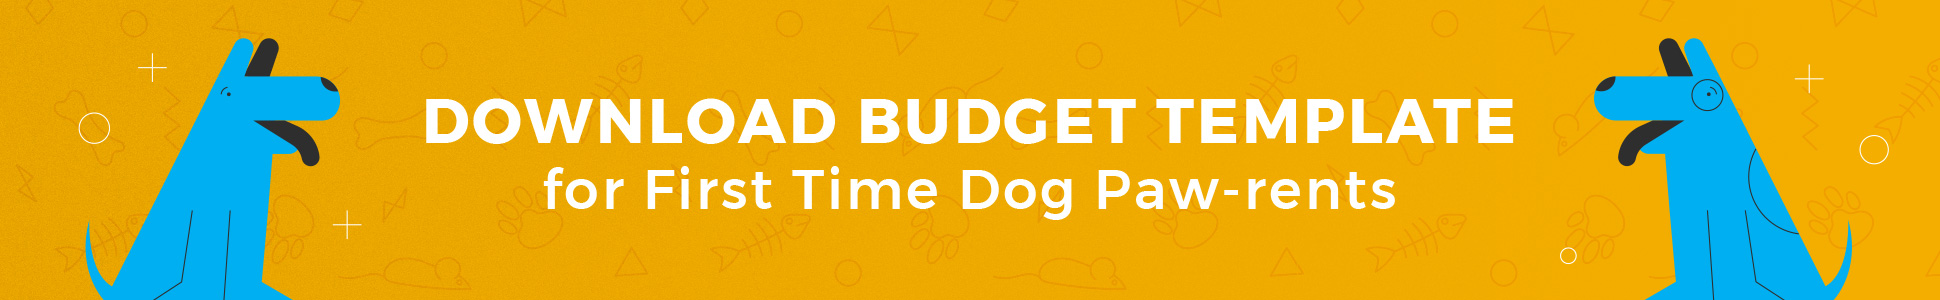 download-dog-budget-template